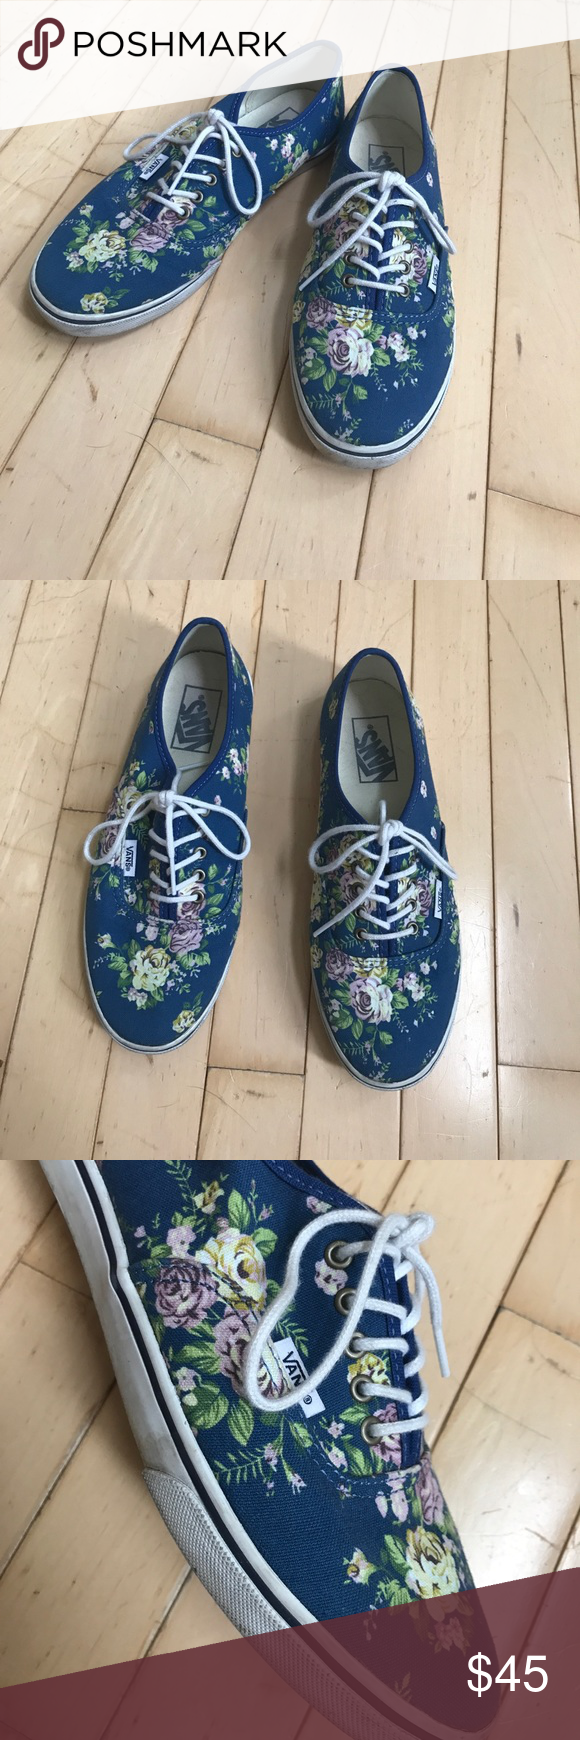 f46a7a478fac Flower lace up Vans Navy blue base with yellow and purple flowersBright  white laces